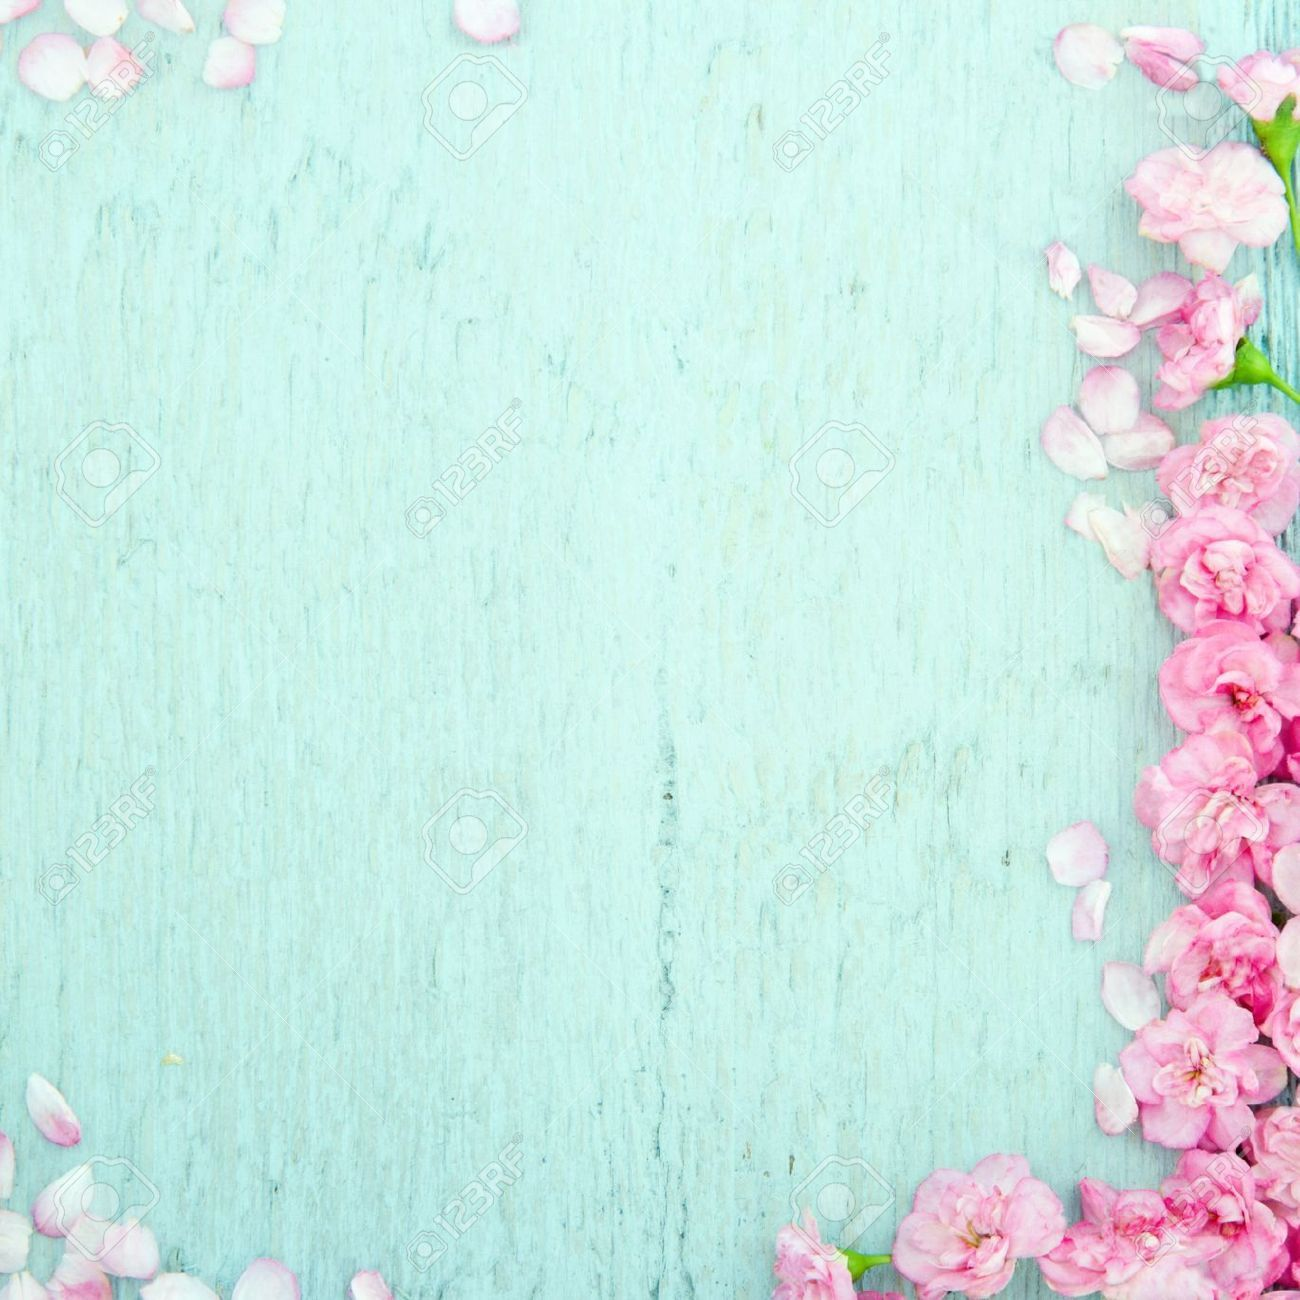 Rustic Flower Background - Google Search